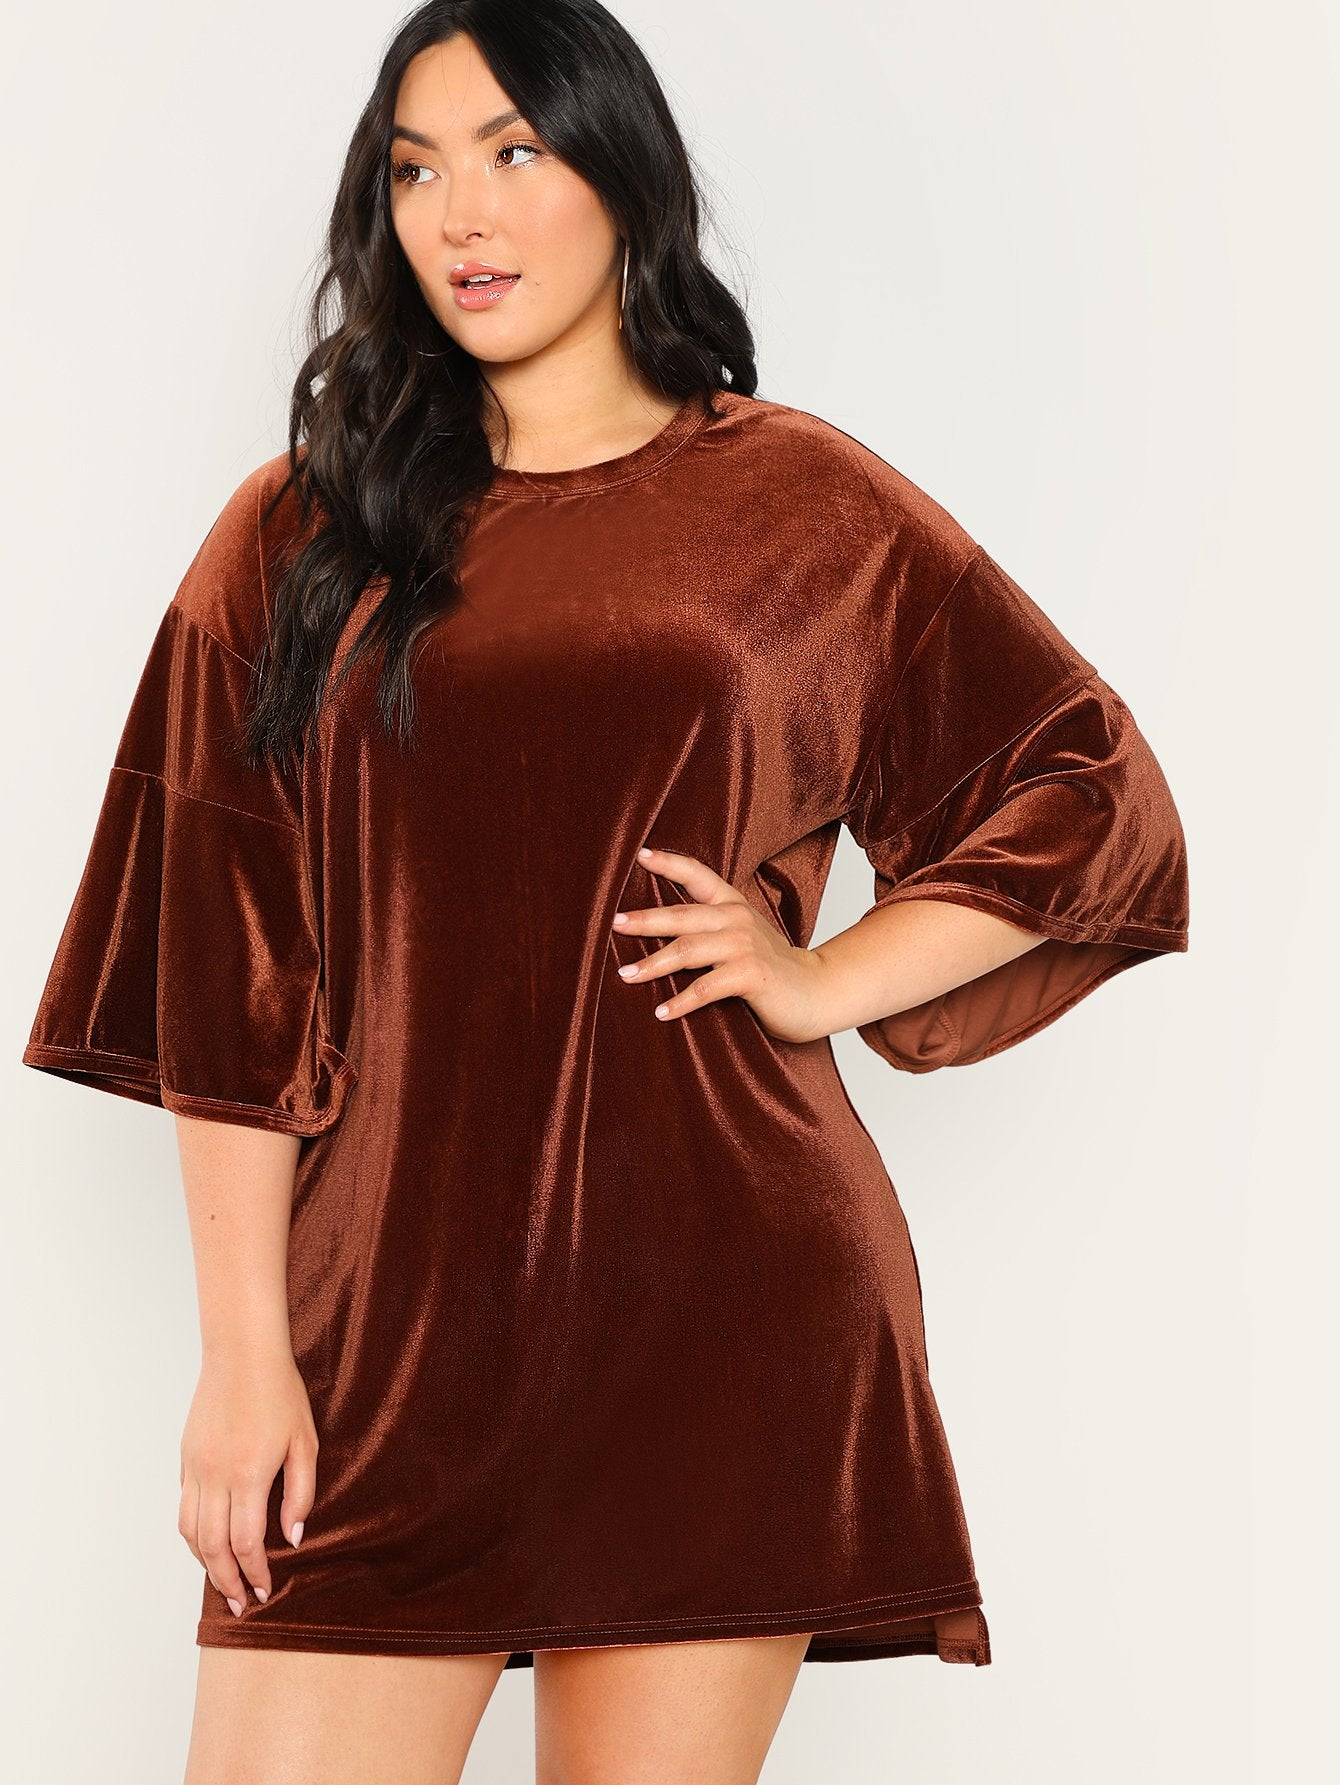 862d857be29 T-Shirts   Jersey Shirts - Women s Plus Size Brown Velvet Short ...